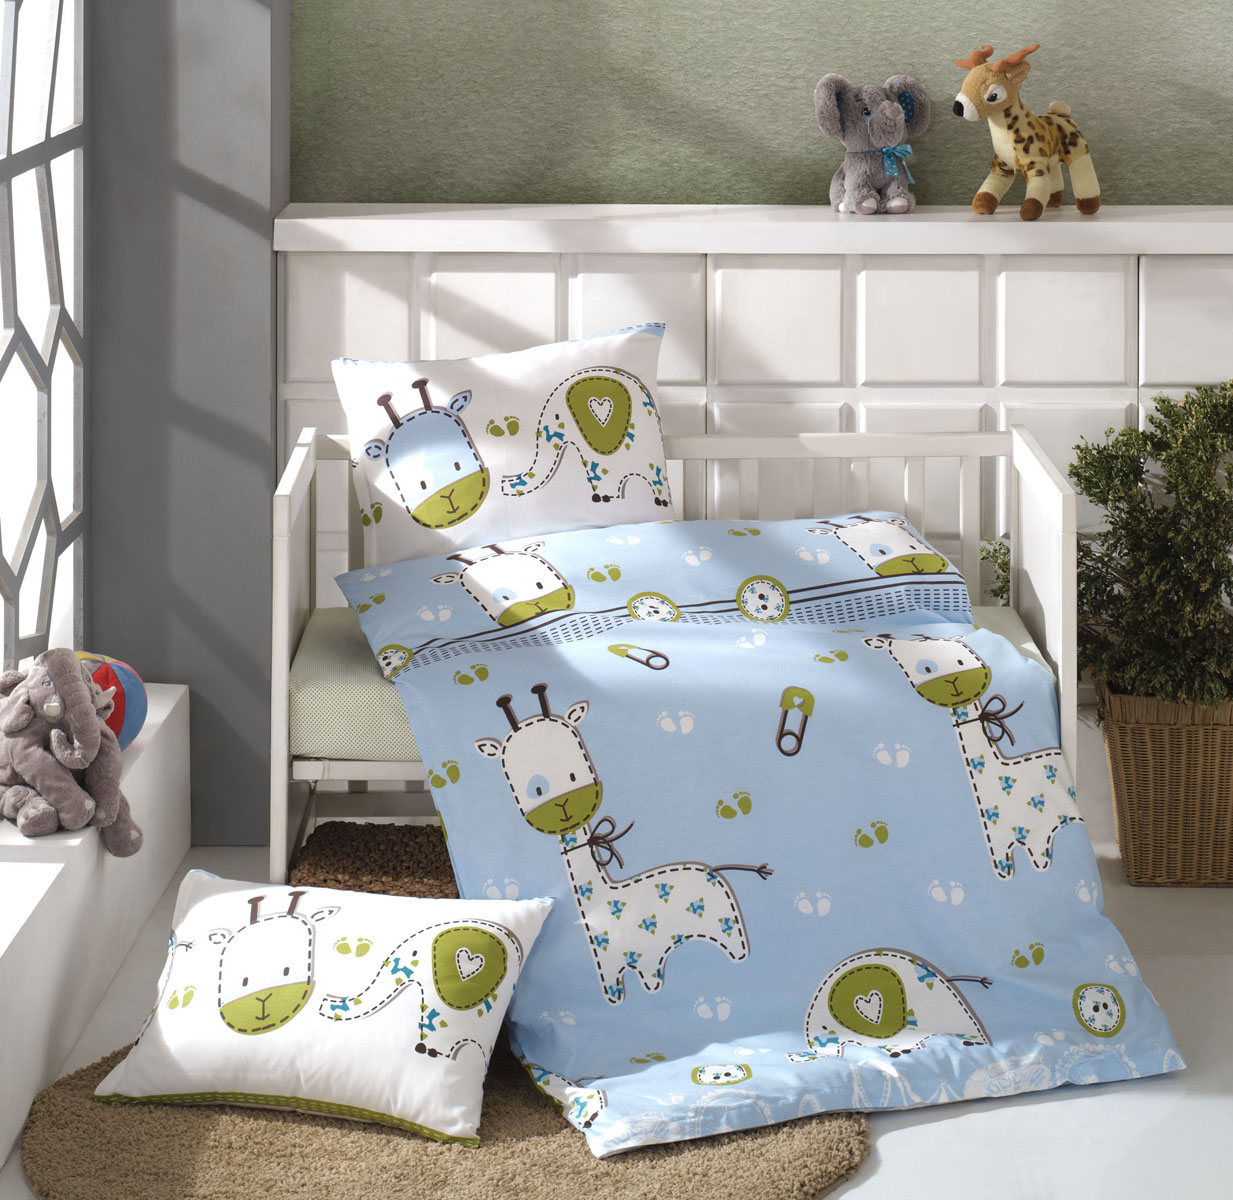 Kinder Bettwäsche Set Ca 100x135 Cm Renforcé Hellblau Curio Beties